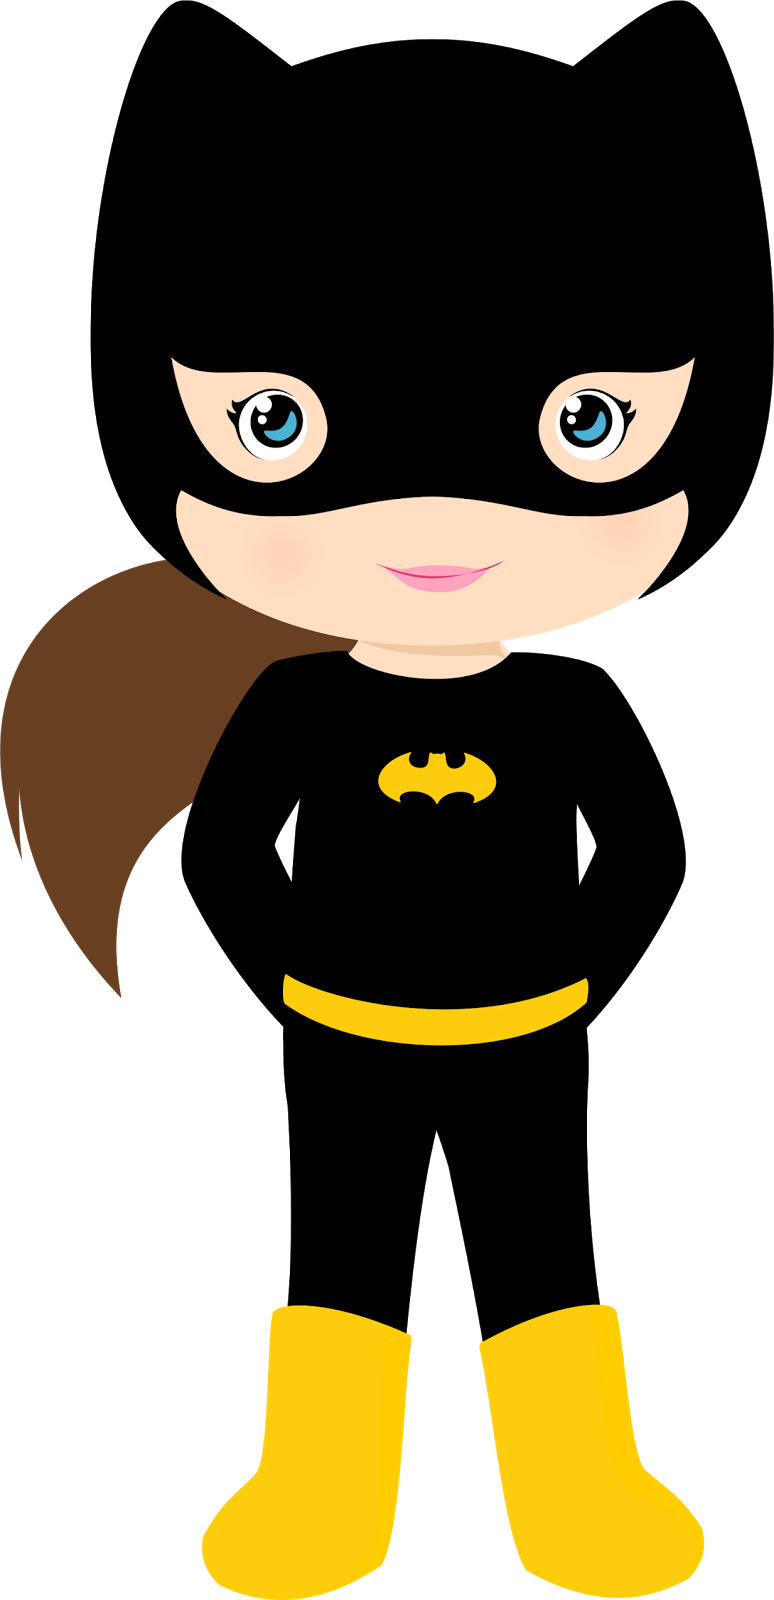 Characters Of Batman Kids Version Clip Art Oh My Fiesta